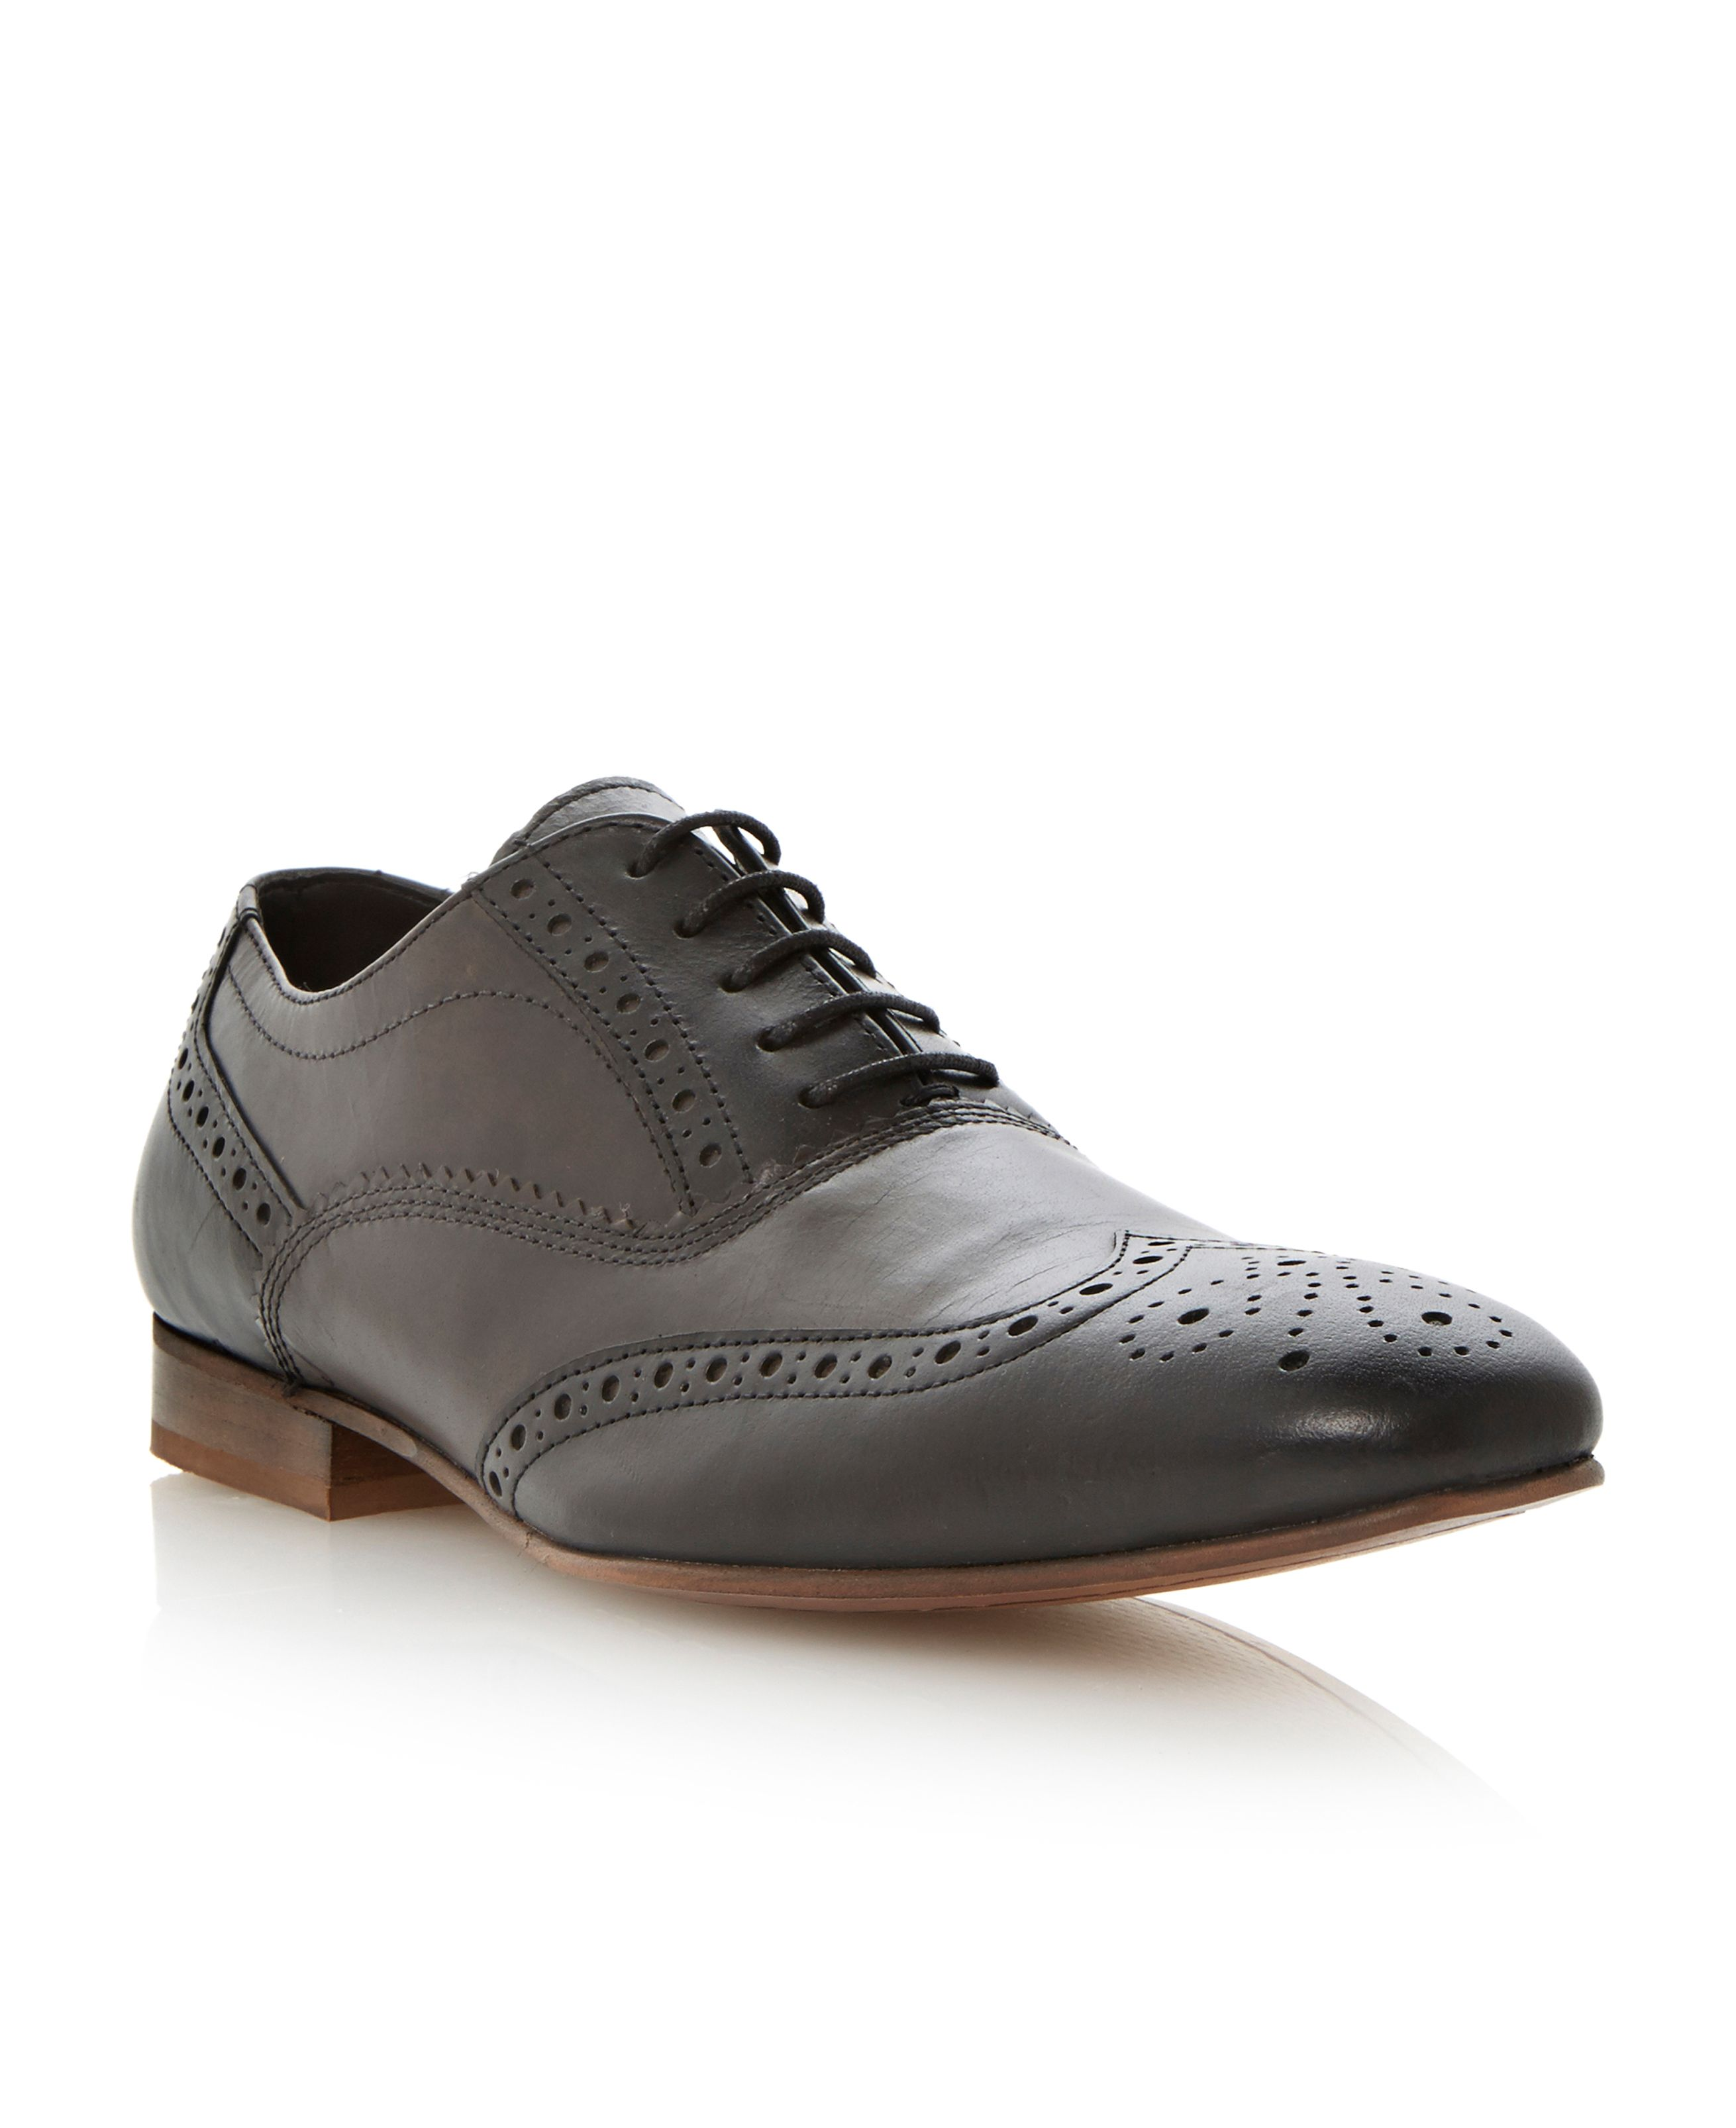 Amersham two tone brogues